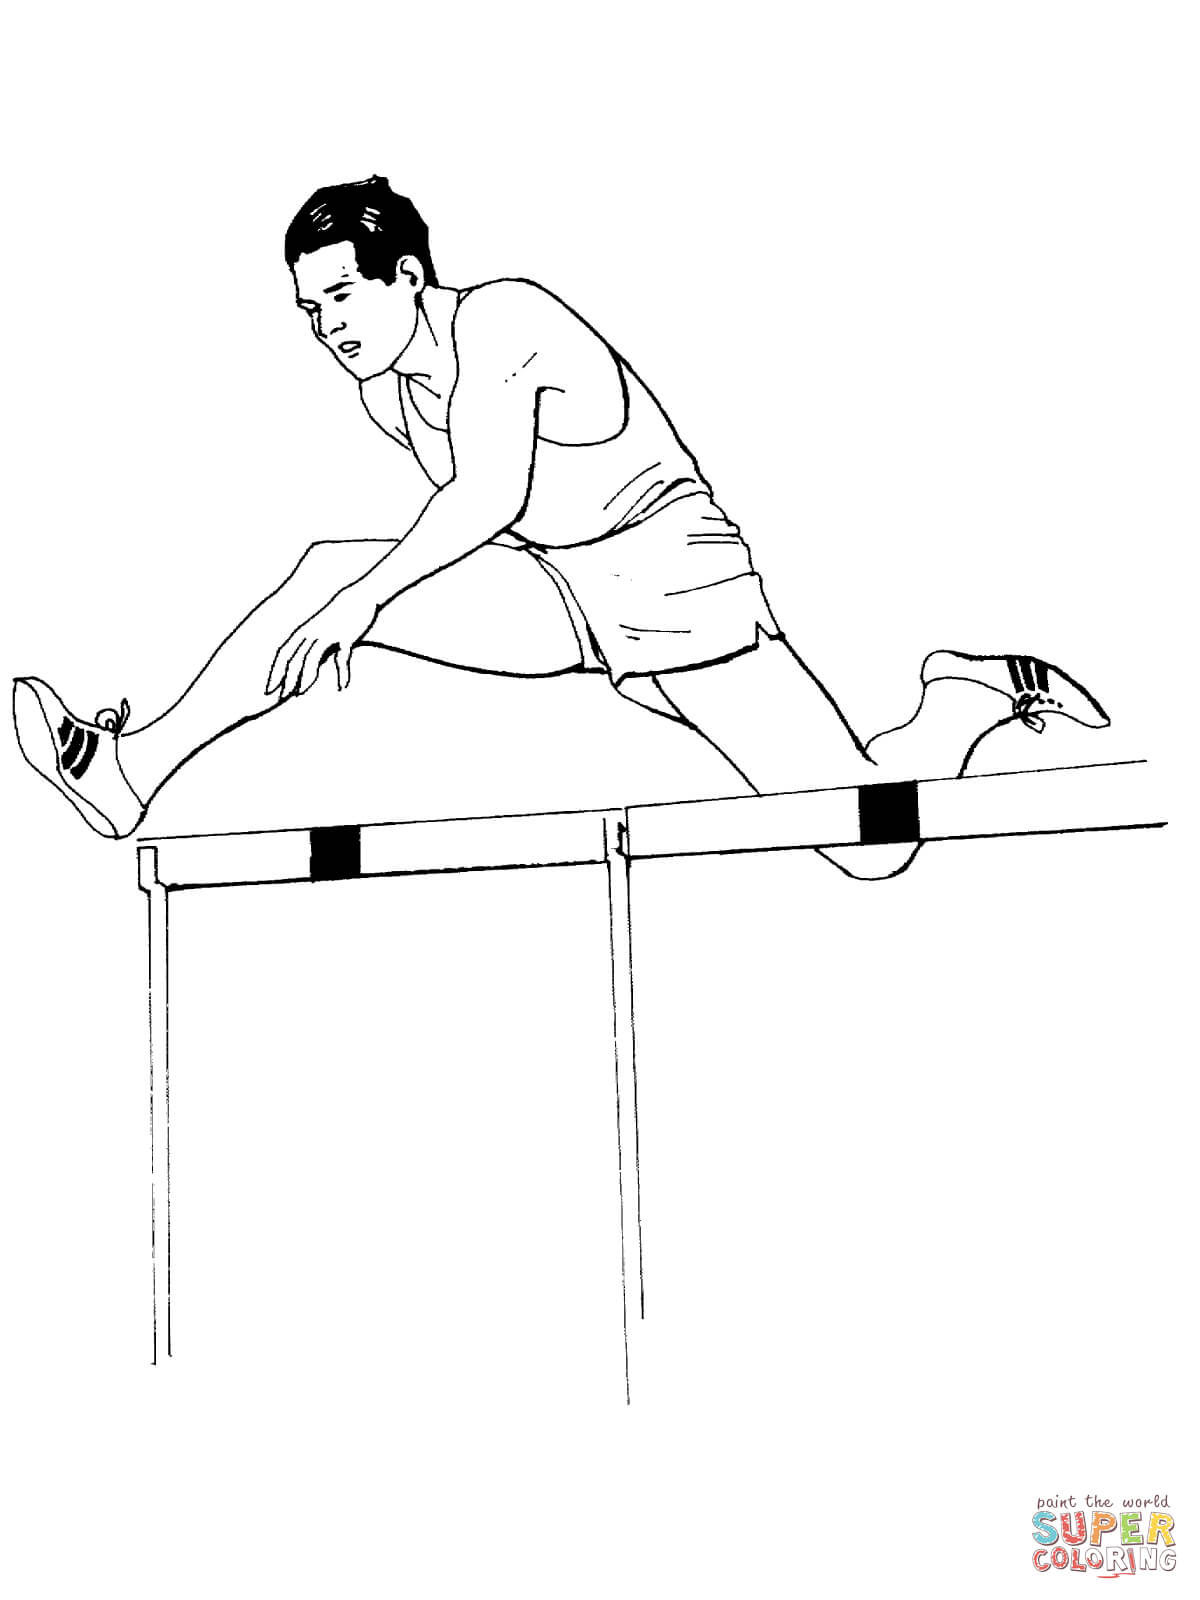 Hurdling Race Coloring Page